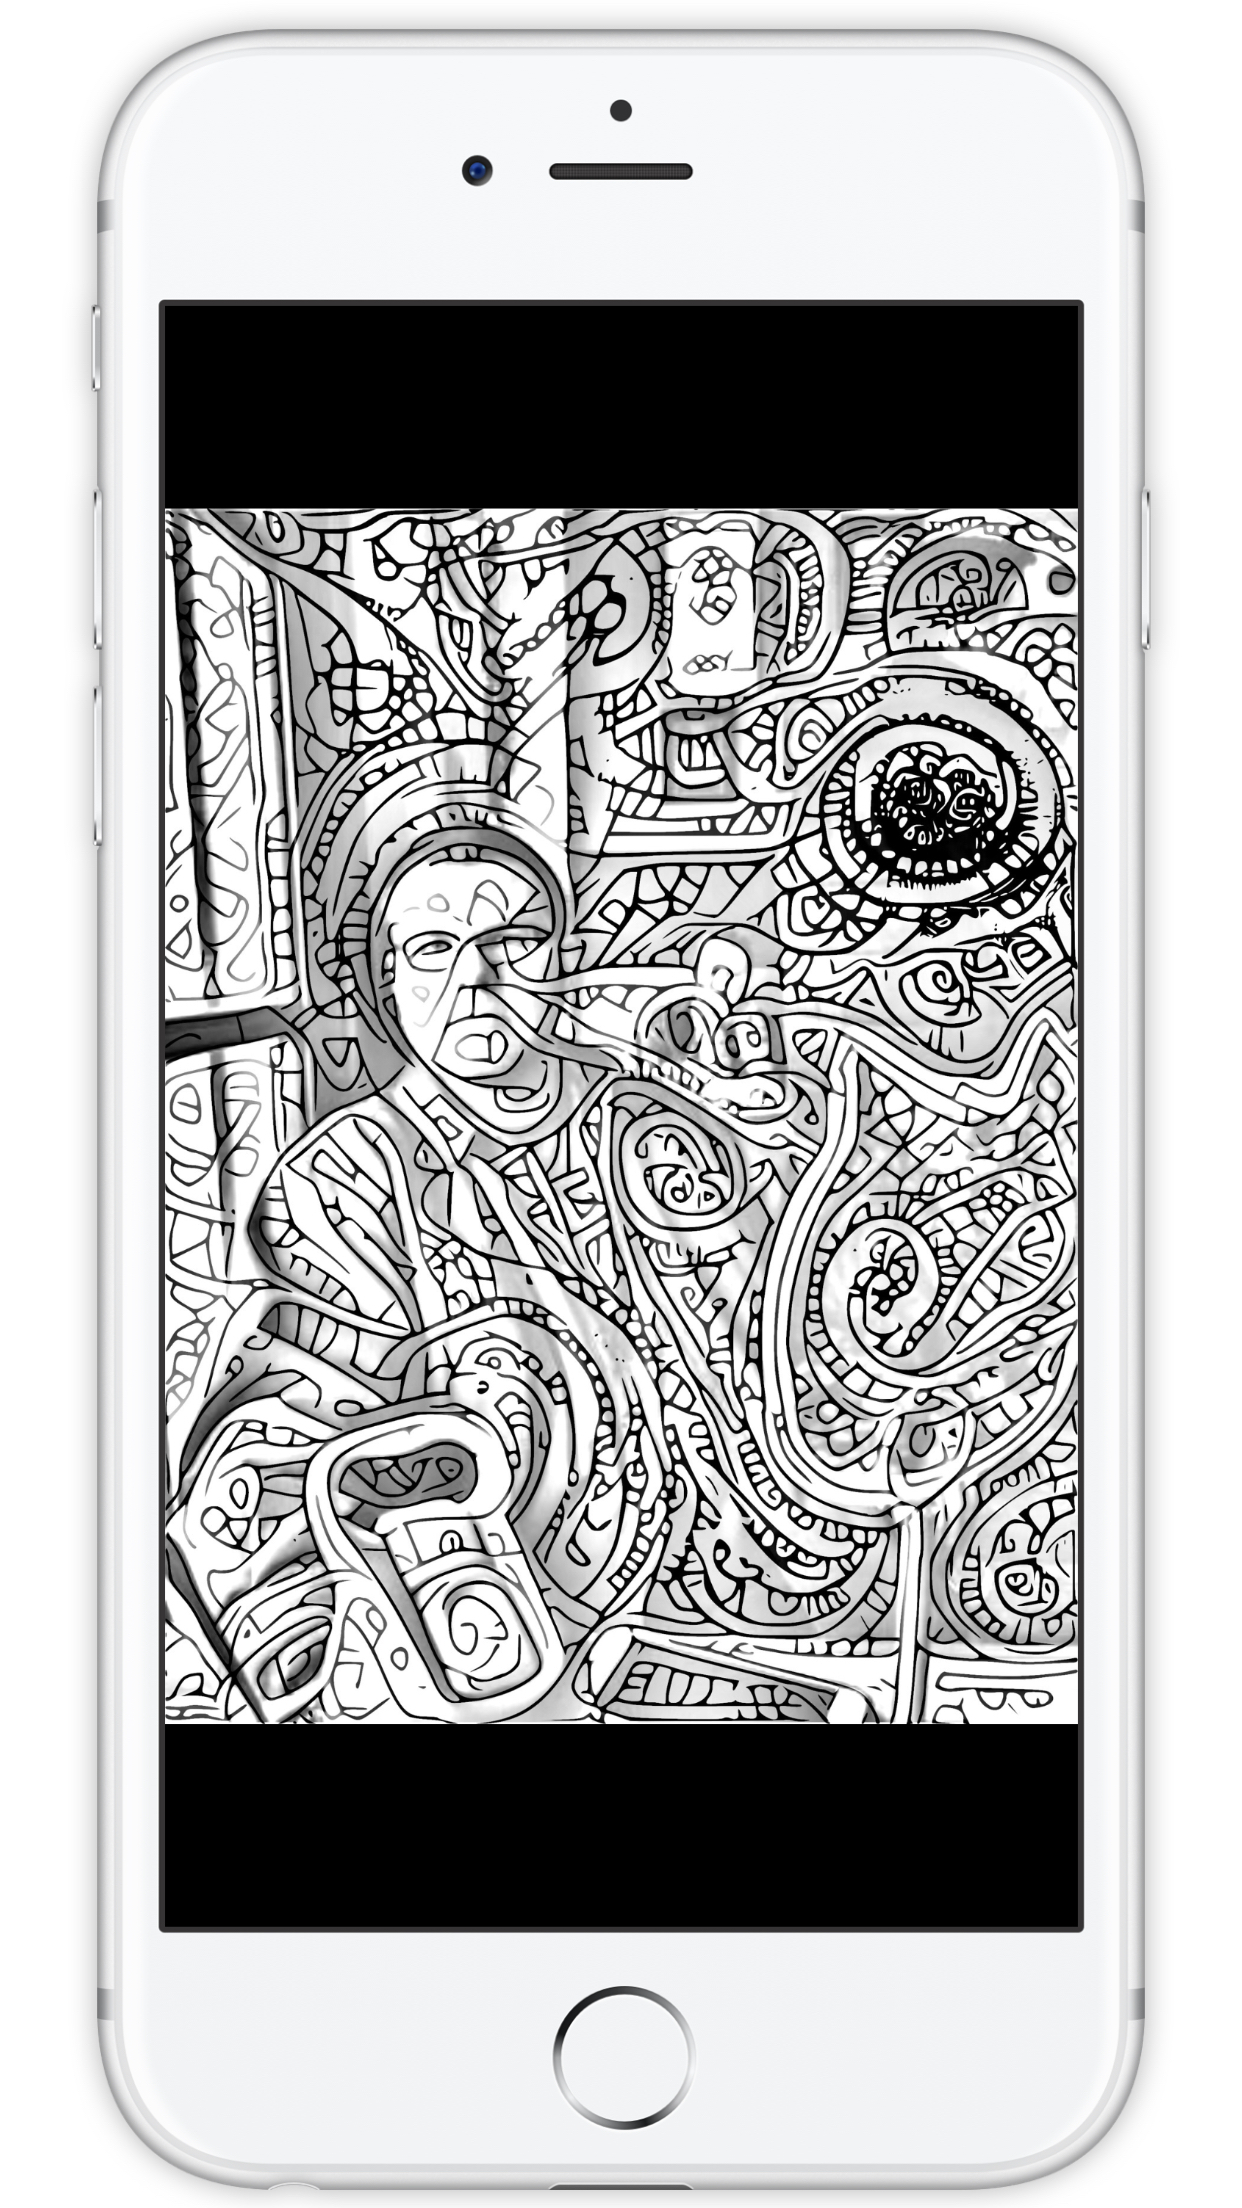 iPhone Coloring Page with Wallpapers Background Download Of Coloring Pages attractive iPhone Page Bigrbaxmt New Ahmedmagdy Gallery